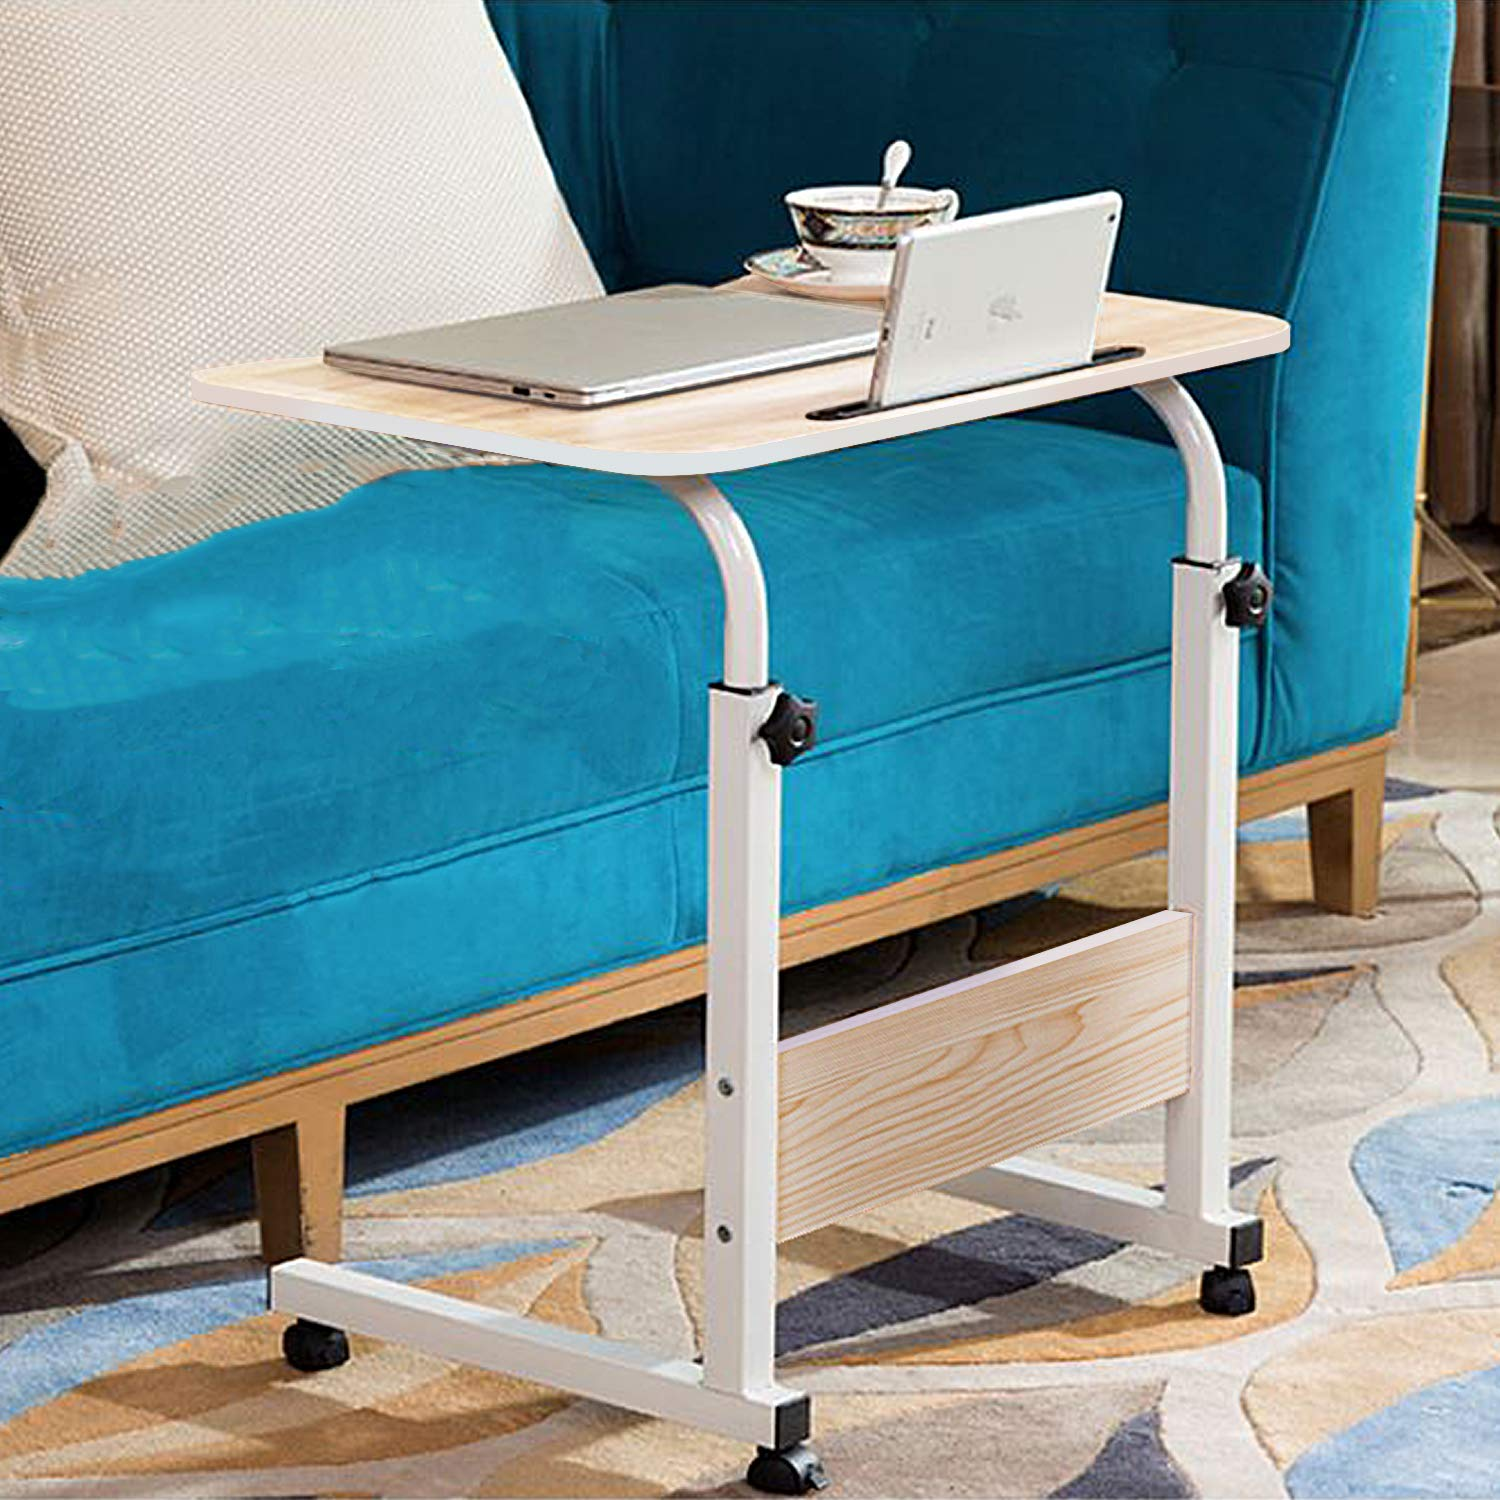 Jerry & Maggie Adjustable Height Desk Laptop Desk | Phone Holder | 4 Wheels Movable Table Lapdesk |Body Curve Edge Design Wood Desk Cart Tray Side Table for Bed - White